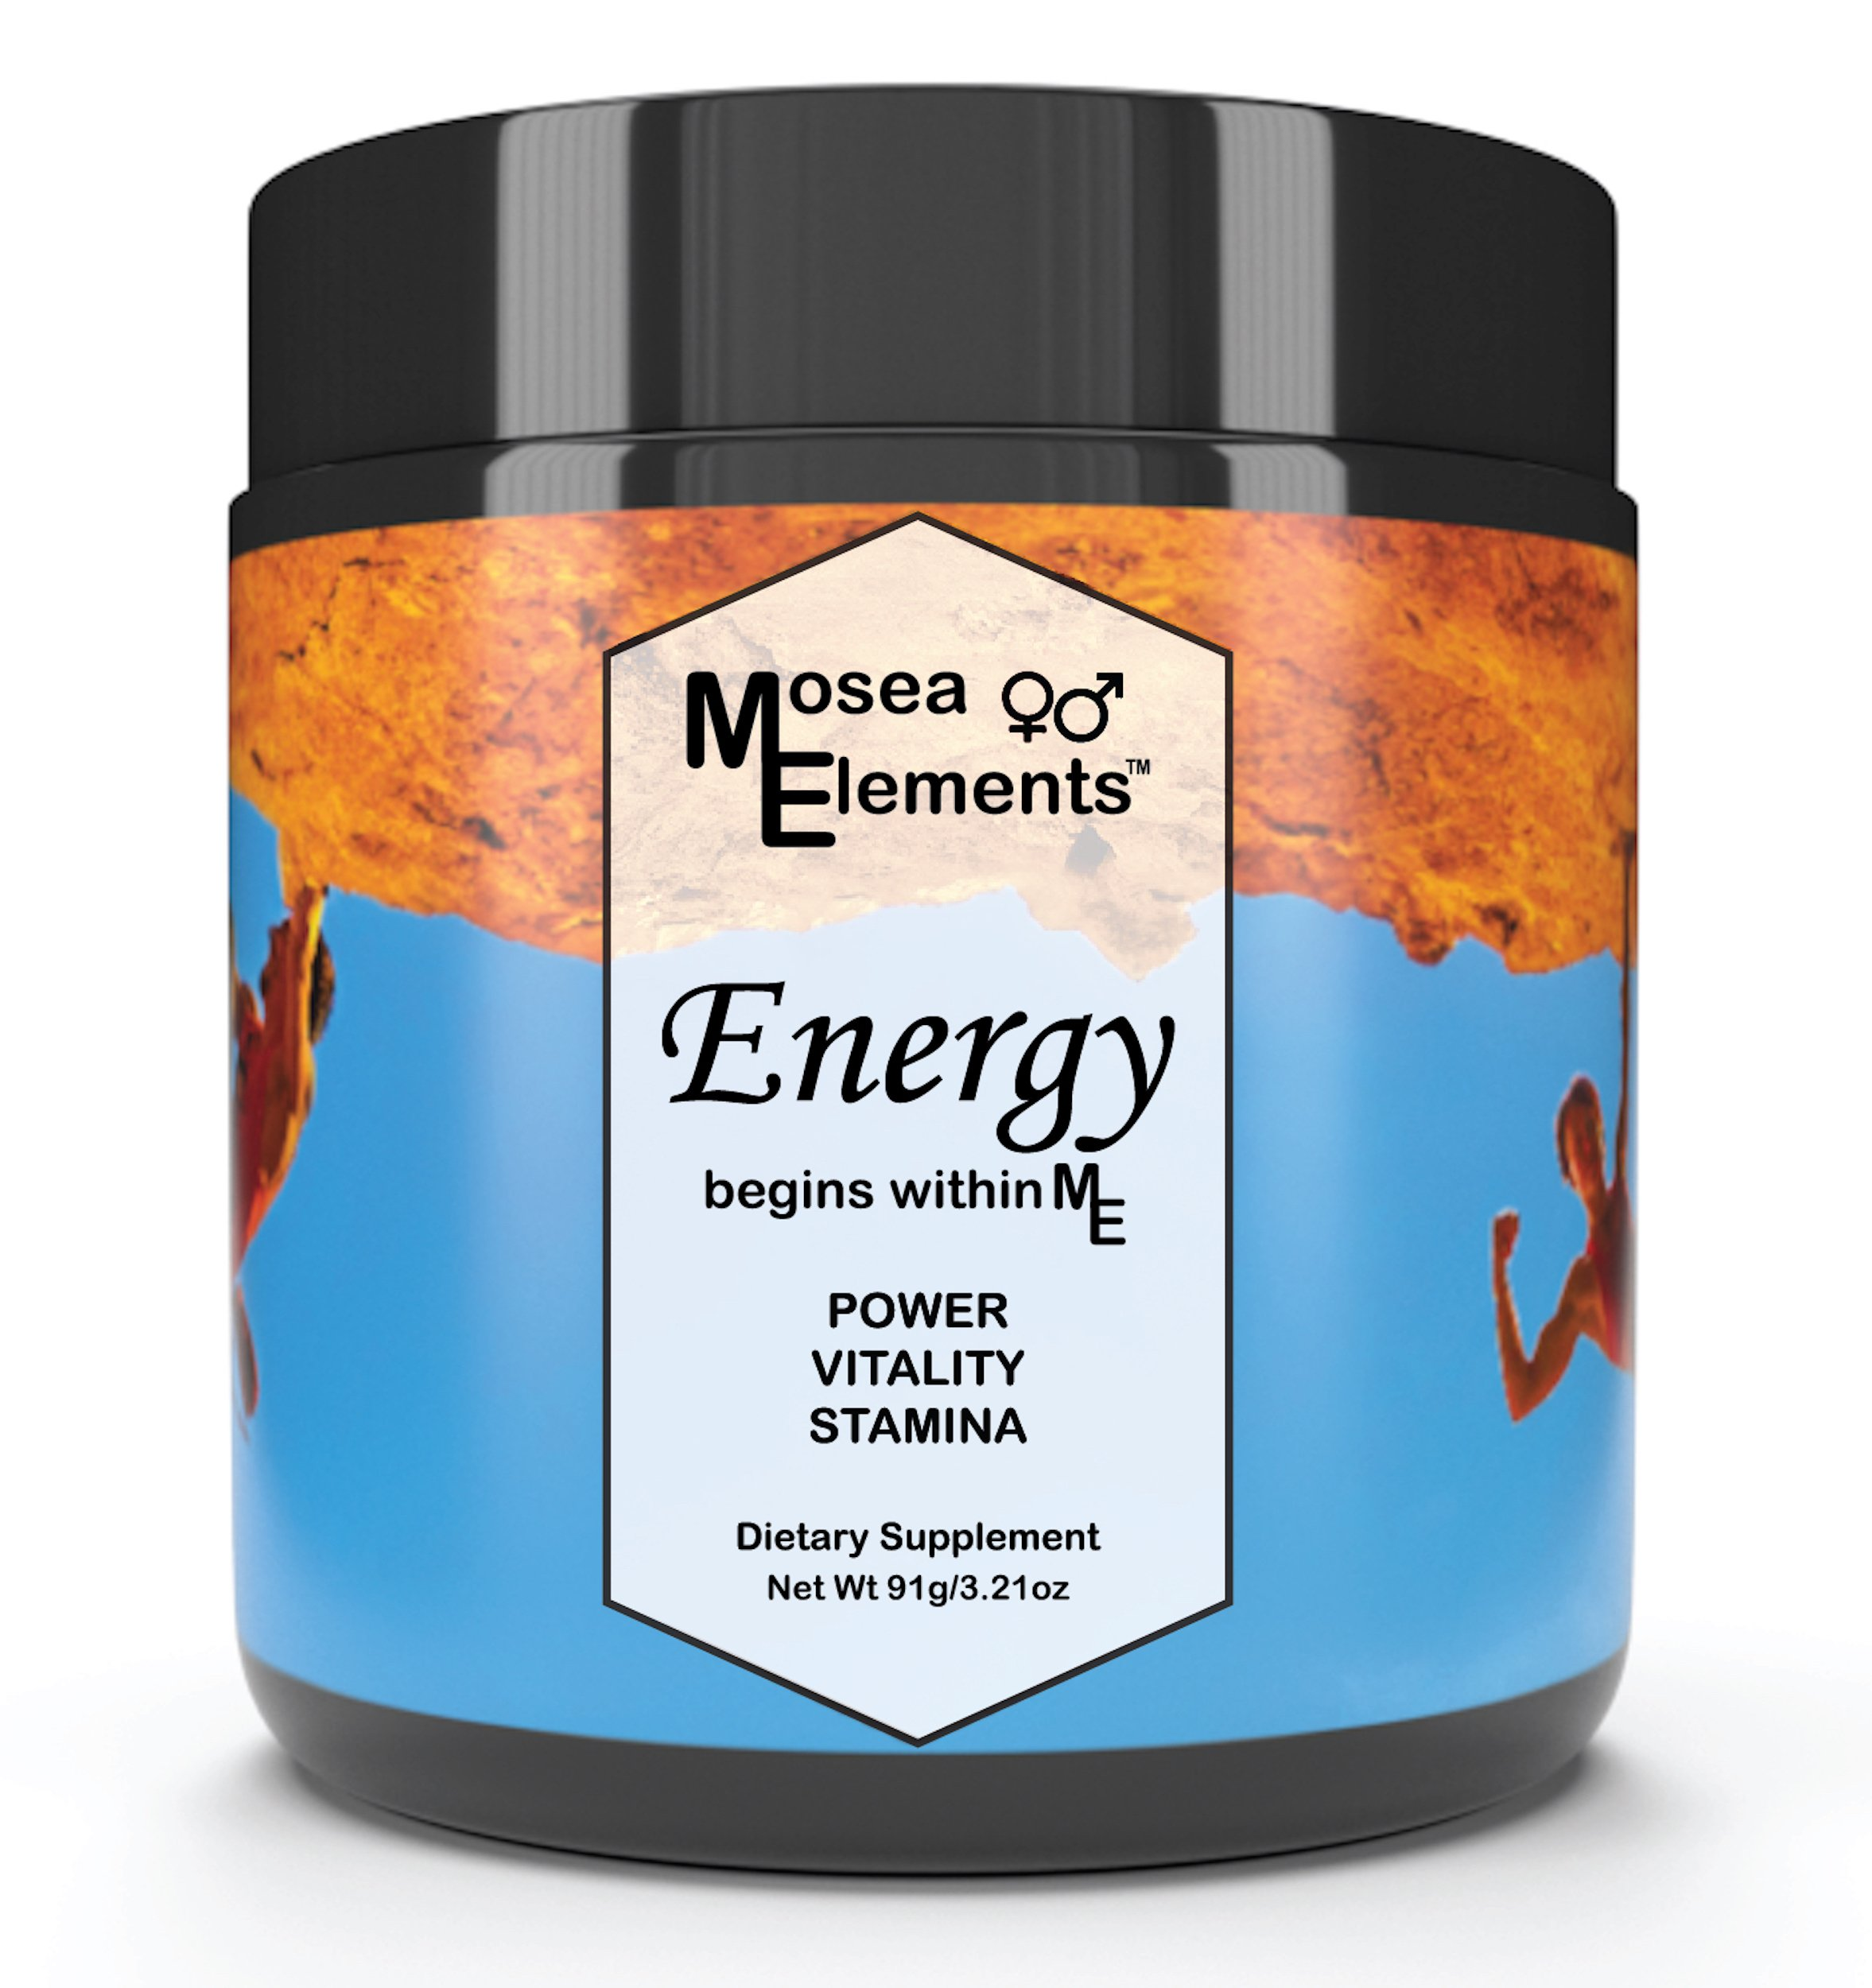 Mosea Elements Natural Energy Supplement -Vegan Pre Workout Powder For Women And Men All Natural Post Workout Recovery Drink Mix Add to Beverage or Smoothies with No Added Sugars or Fillers